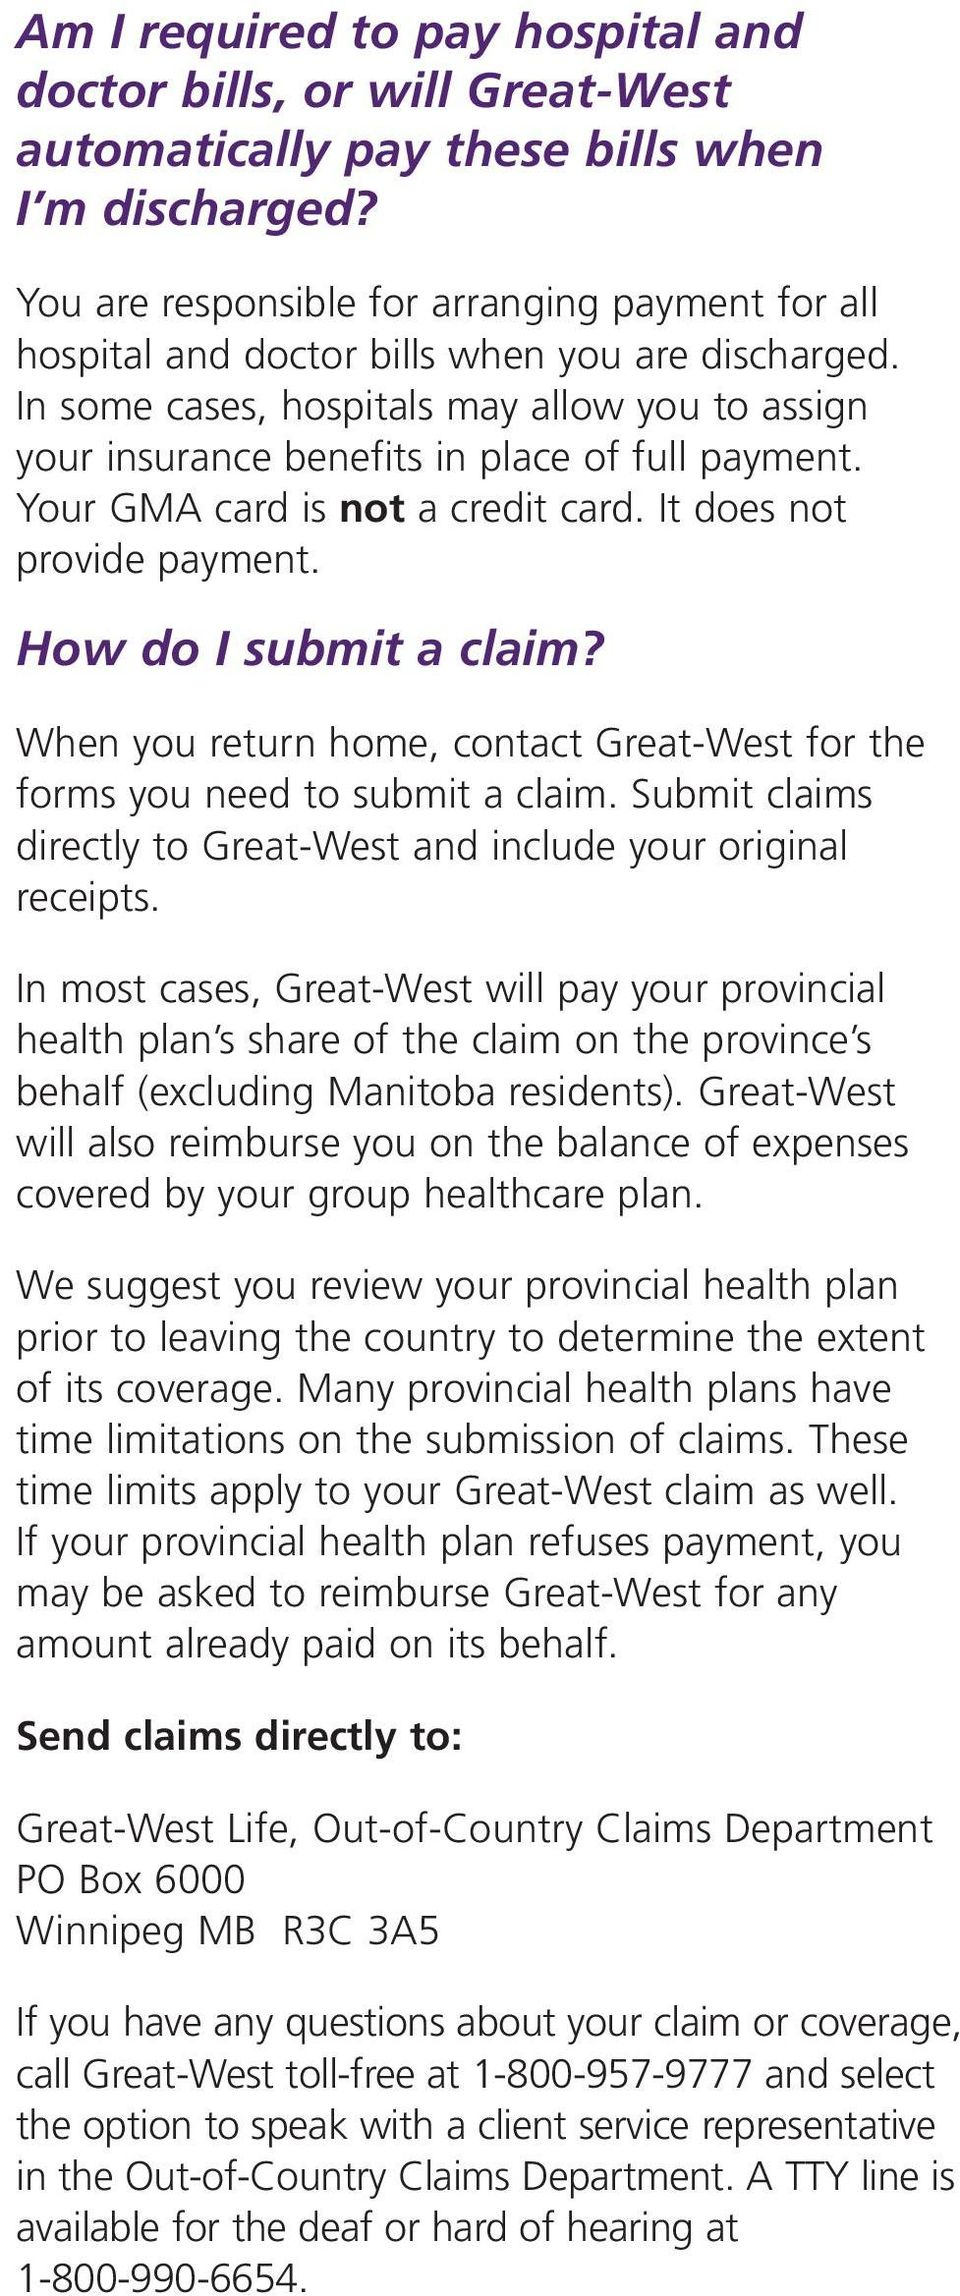 Your GMA card is not a credit card. It does not provide payment. How do I submit a claim? When you return home, contact Great-West for the forms you need to submit a claim.